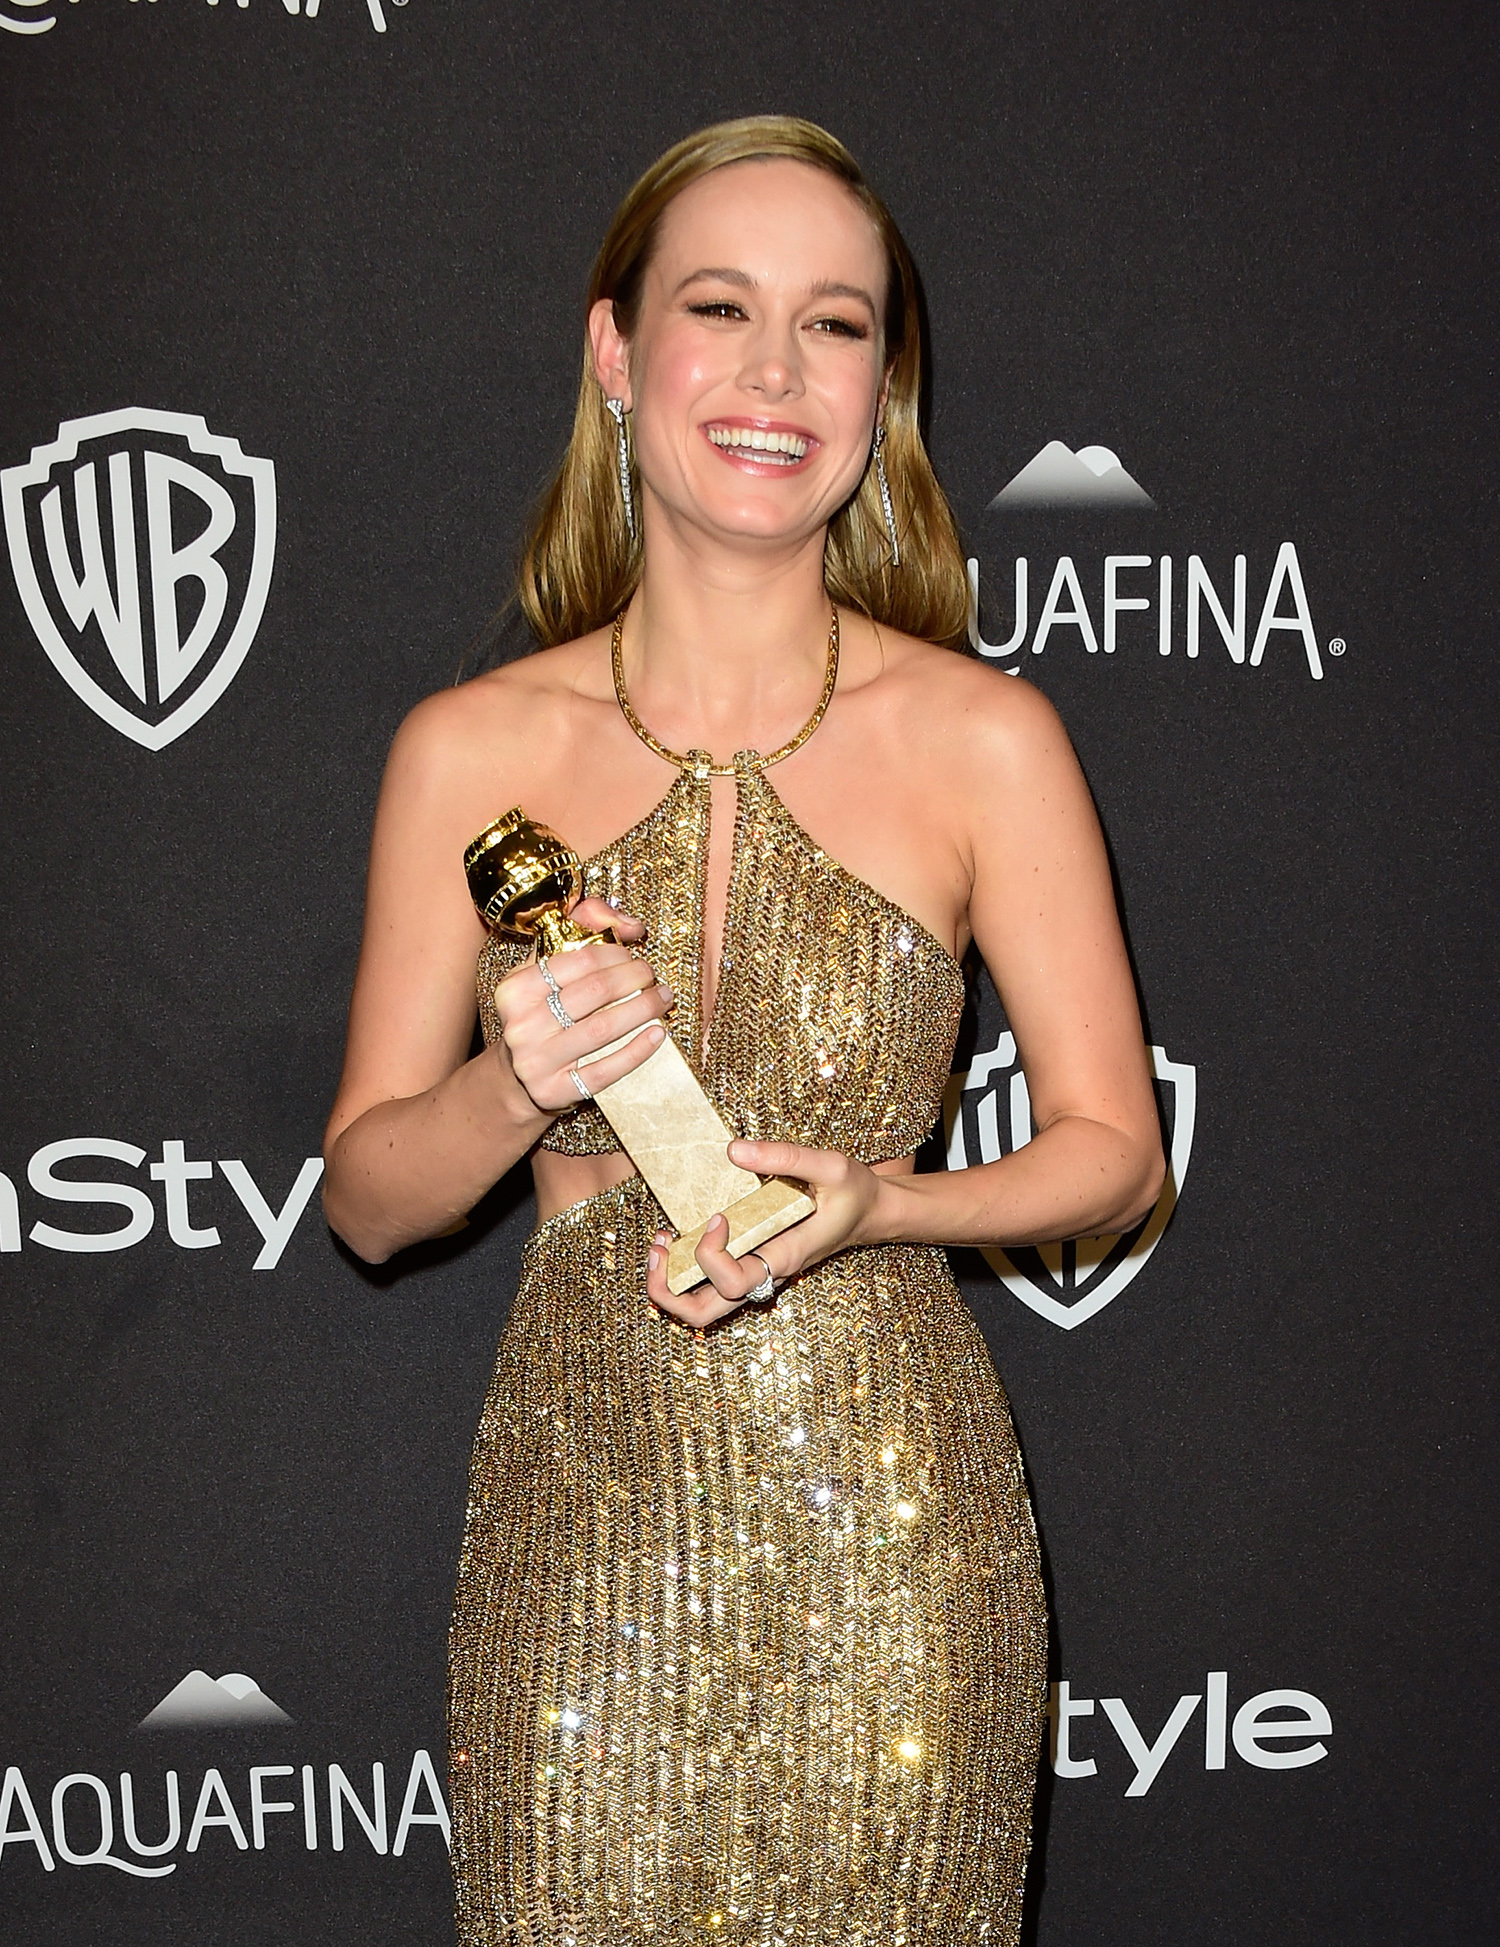 BEVERLY HILLS, CA - JANUARY 10: Actress Brie Larson, winner of Best Performance in a Motion Picture - Drama for 'Room,' attends InStyle and Warner Bros. 73rd Annual Golden Globe Awards Post-Party at The Beverly Hilton Hotel on January 10, 2016 in Beverly Hills, California. Frazer Harrison/Getty Images/AFP